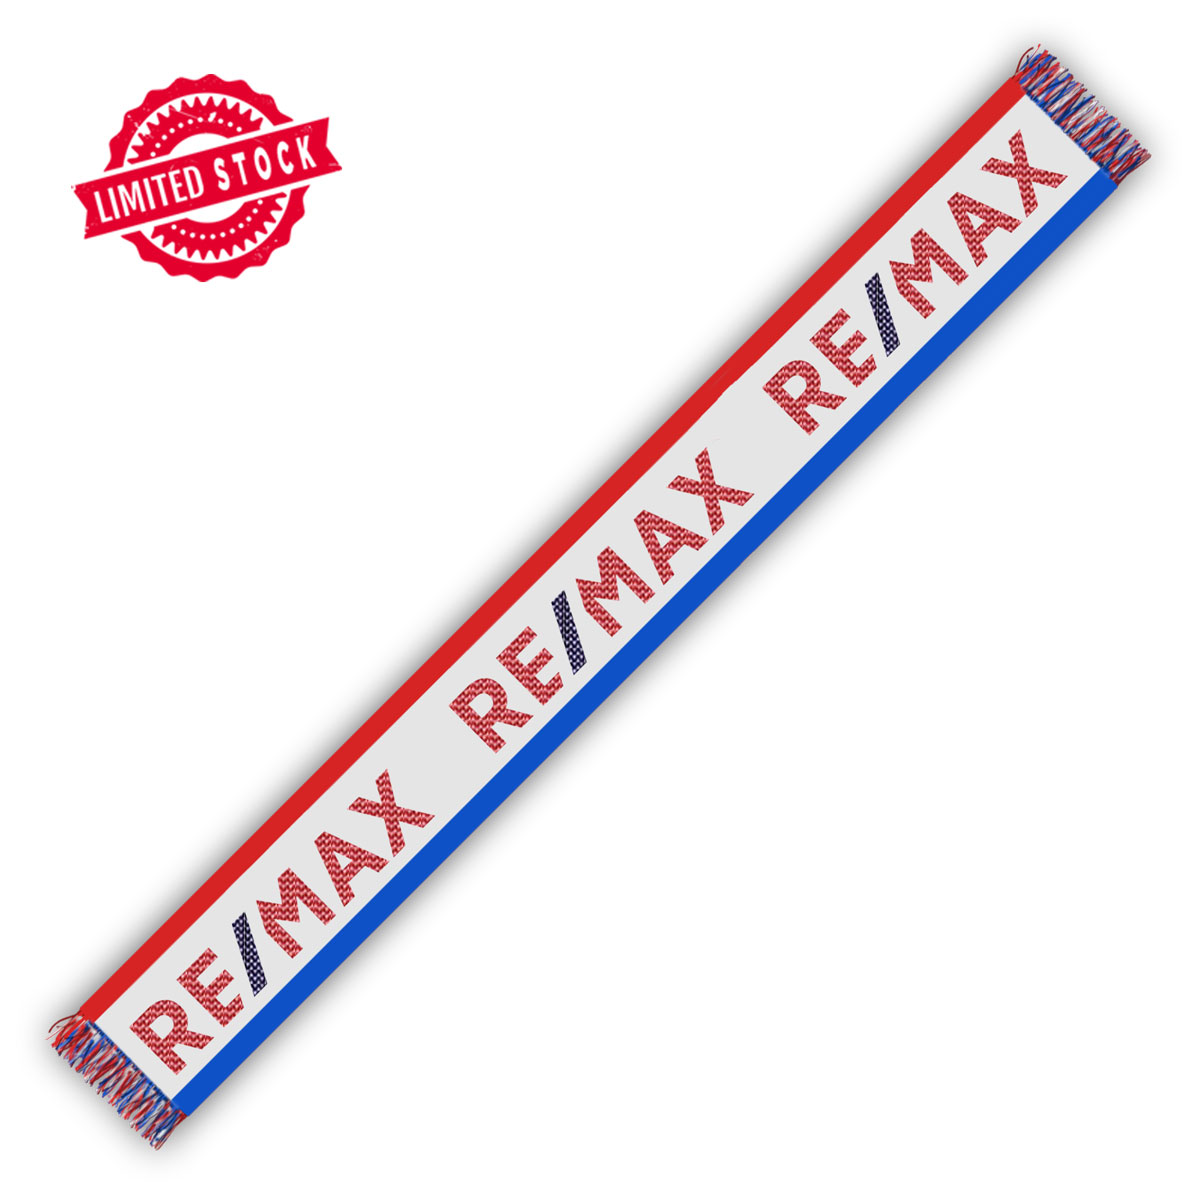 The 2019 RE/MAX Holiday Scarf